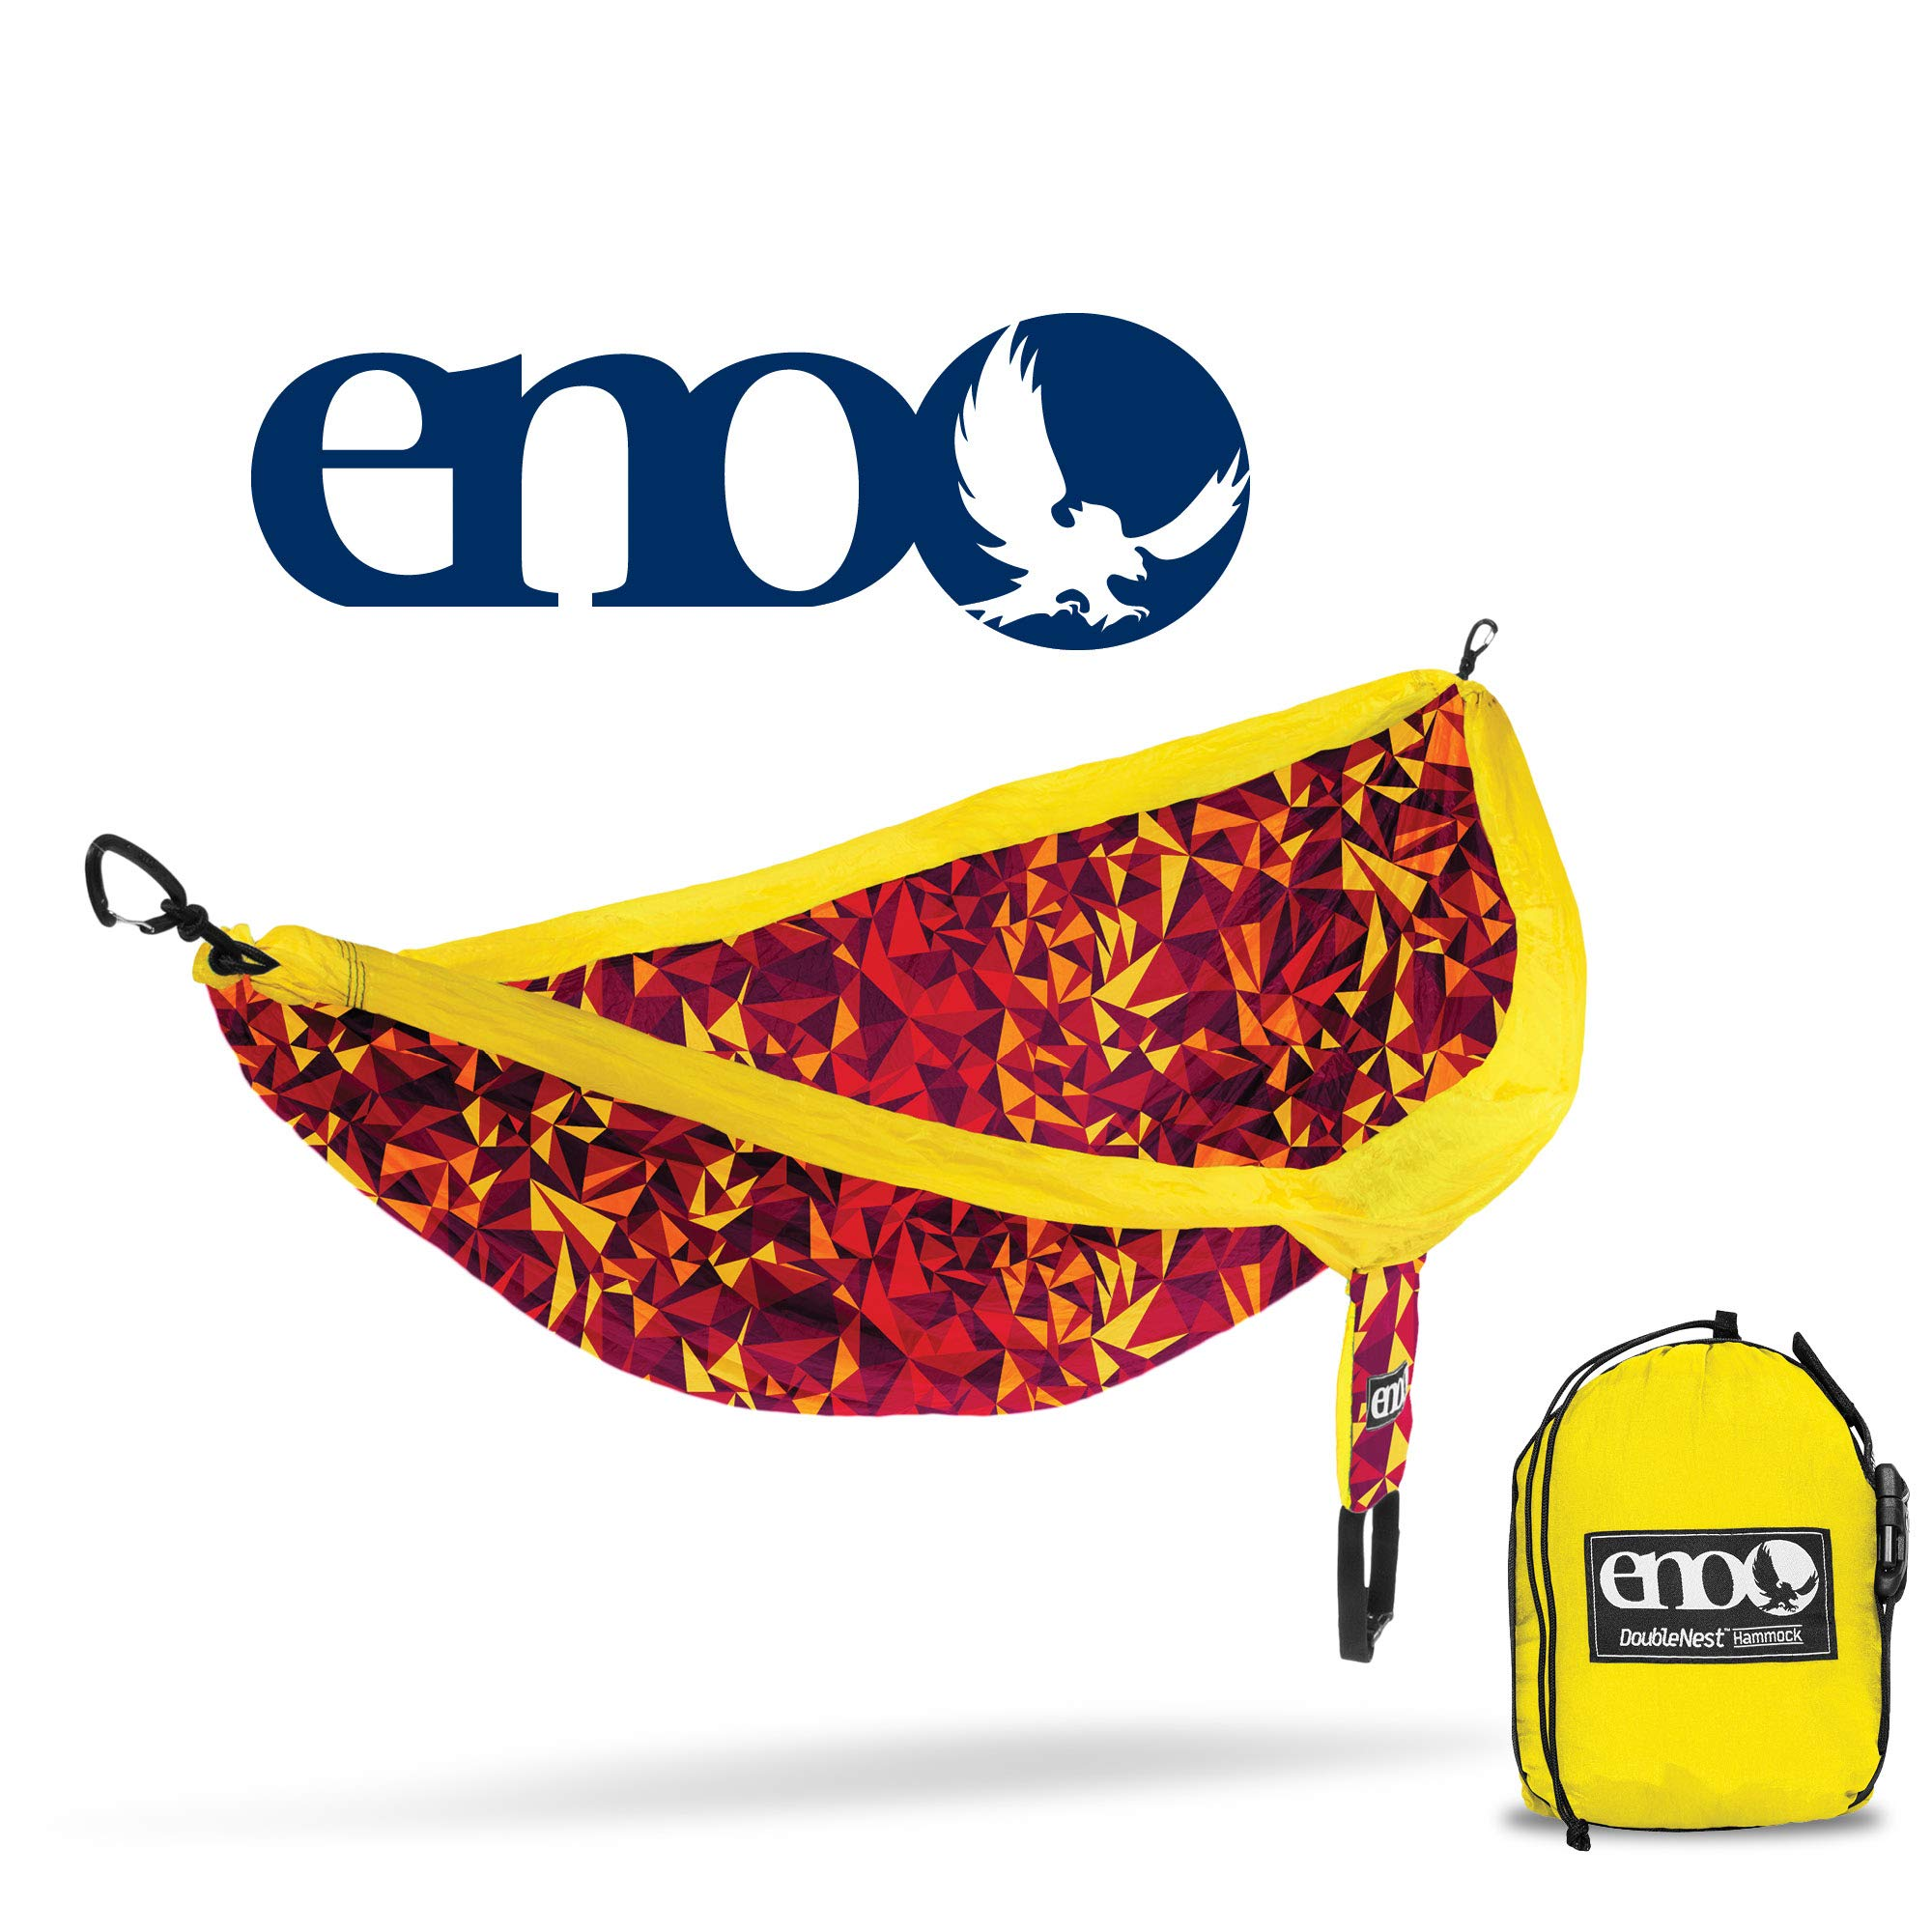 ENO - Eagles Nest Outfitters DoubleNest Print Lightweight Camping Hammock, 1 to 2 Person, Geo/Red by ENO